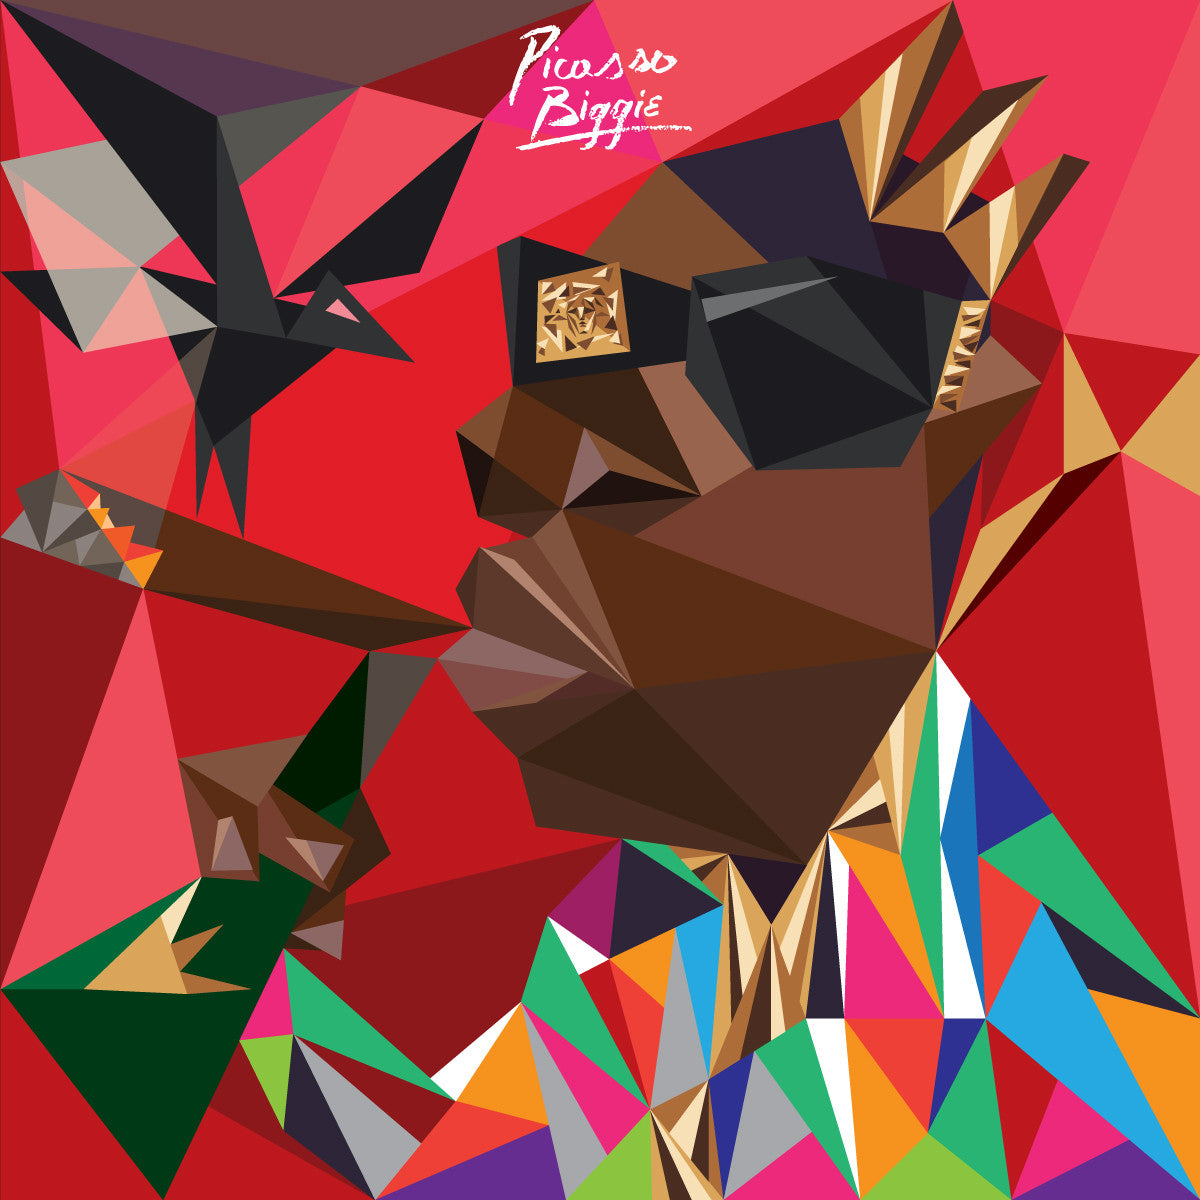 SINGLE - Notorious B.I.G. feat Jay Z - Picasso Biggie (!llmind Remix)